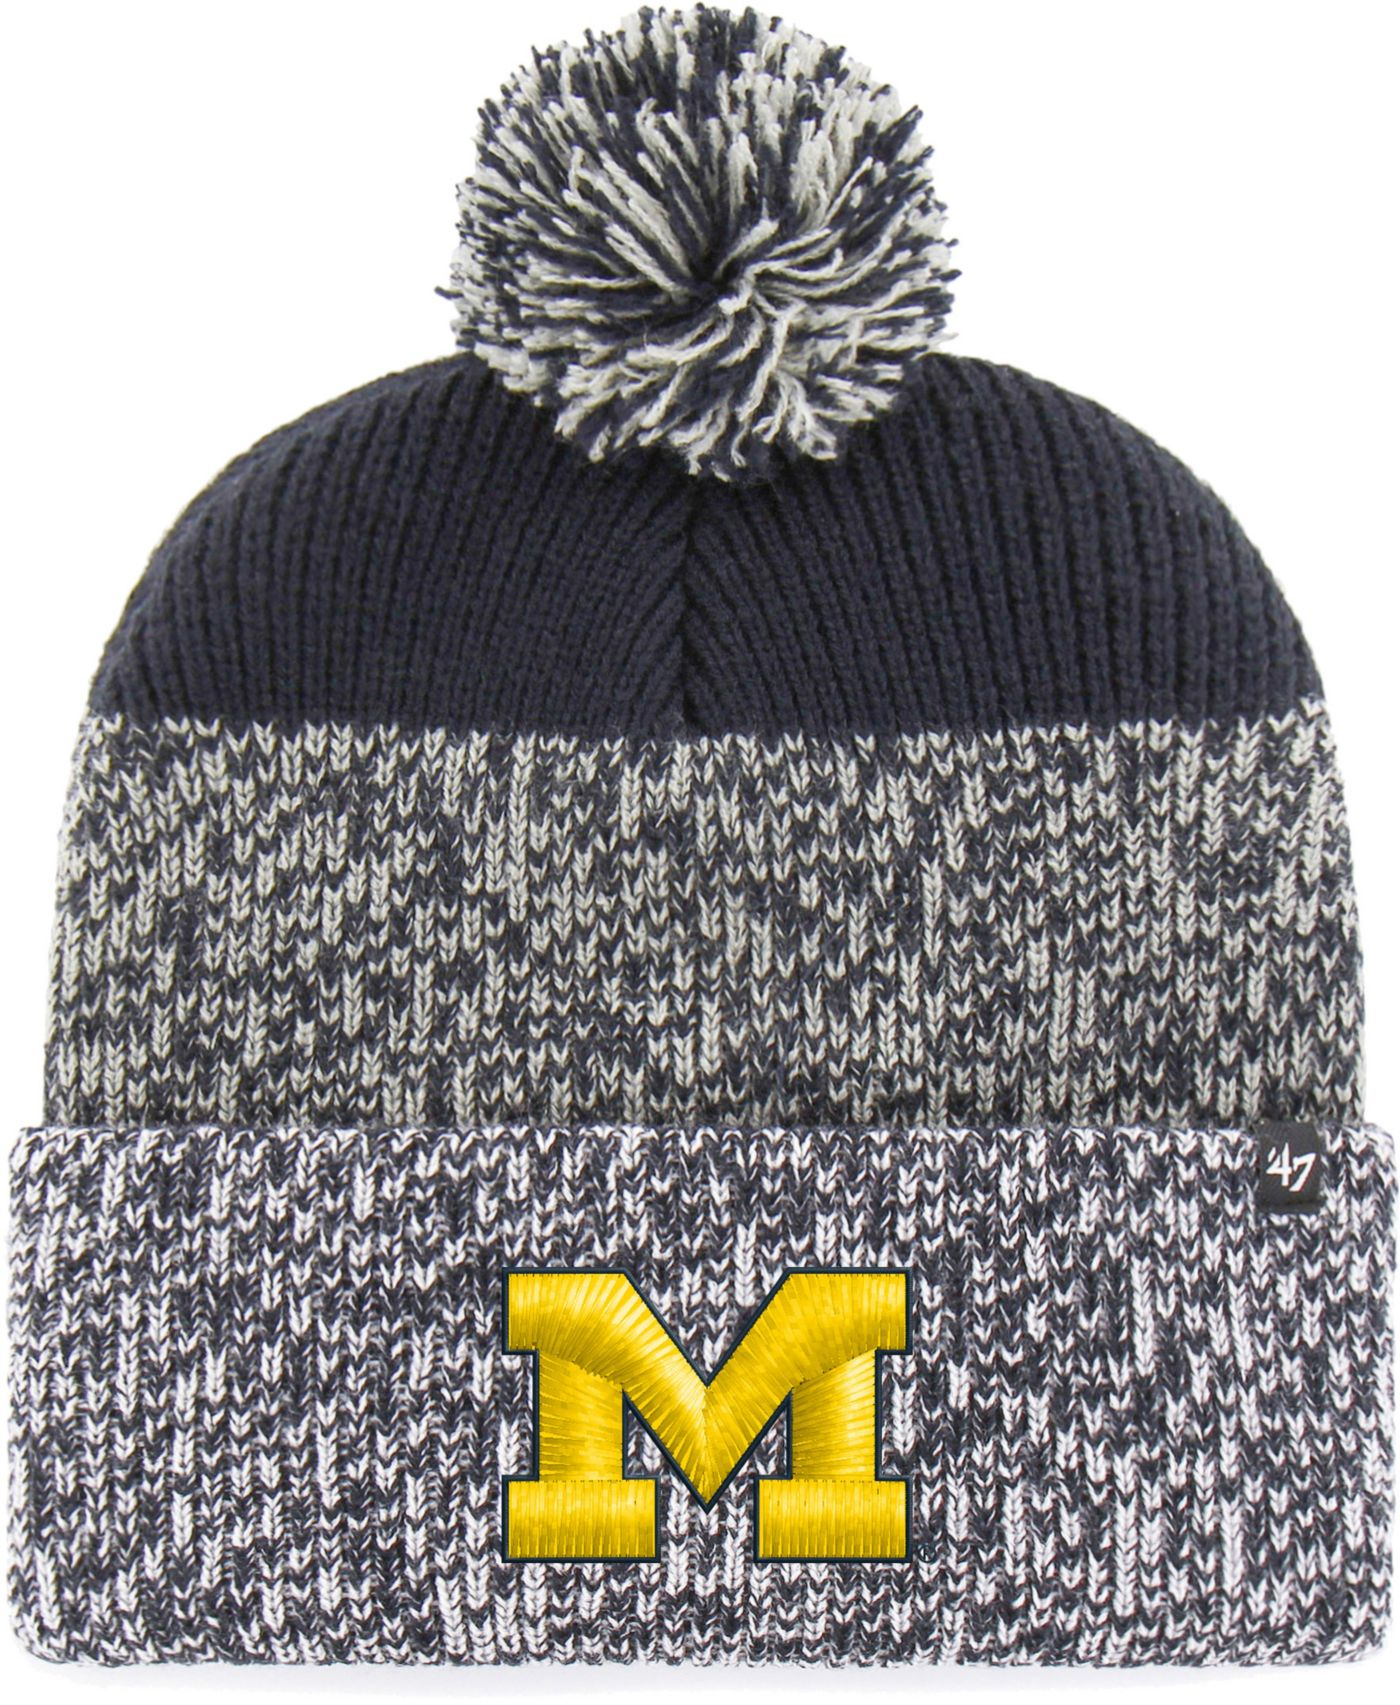 '47 Men's Michigan Wolverines Grey/Blue Static Cuffed Knit Hat